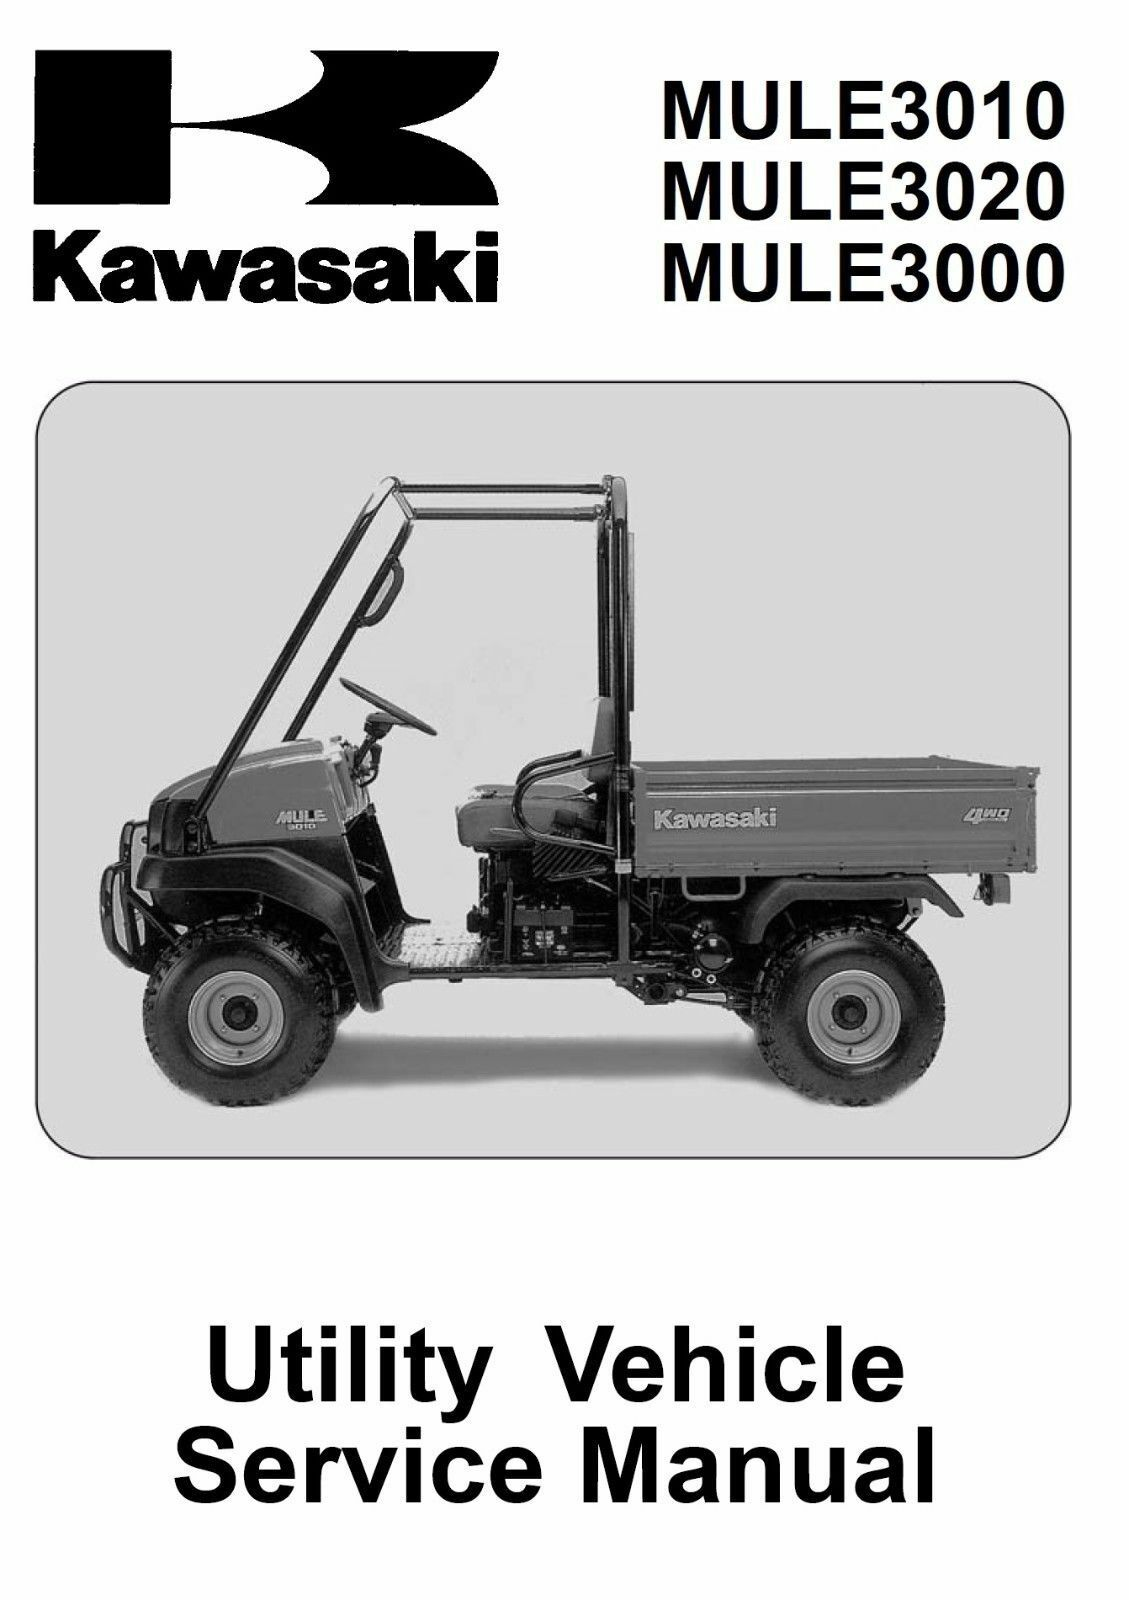 Kawasaki Mule 3000 3010 3020 2001 2002 2003 2004 2005 service manual on CD  1 of 4FREE Shipping ...